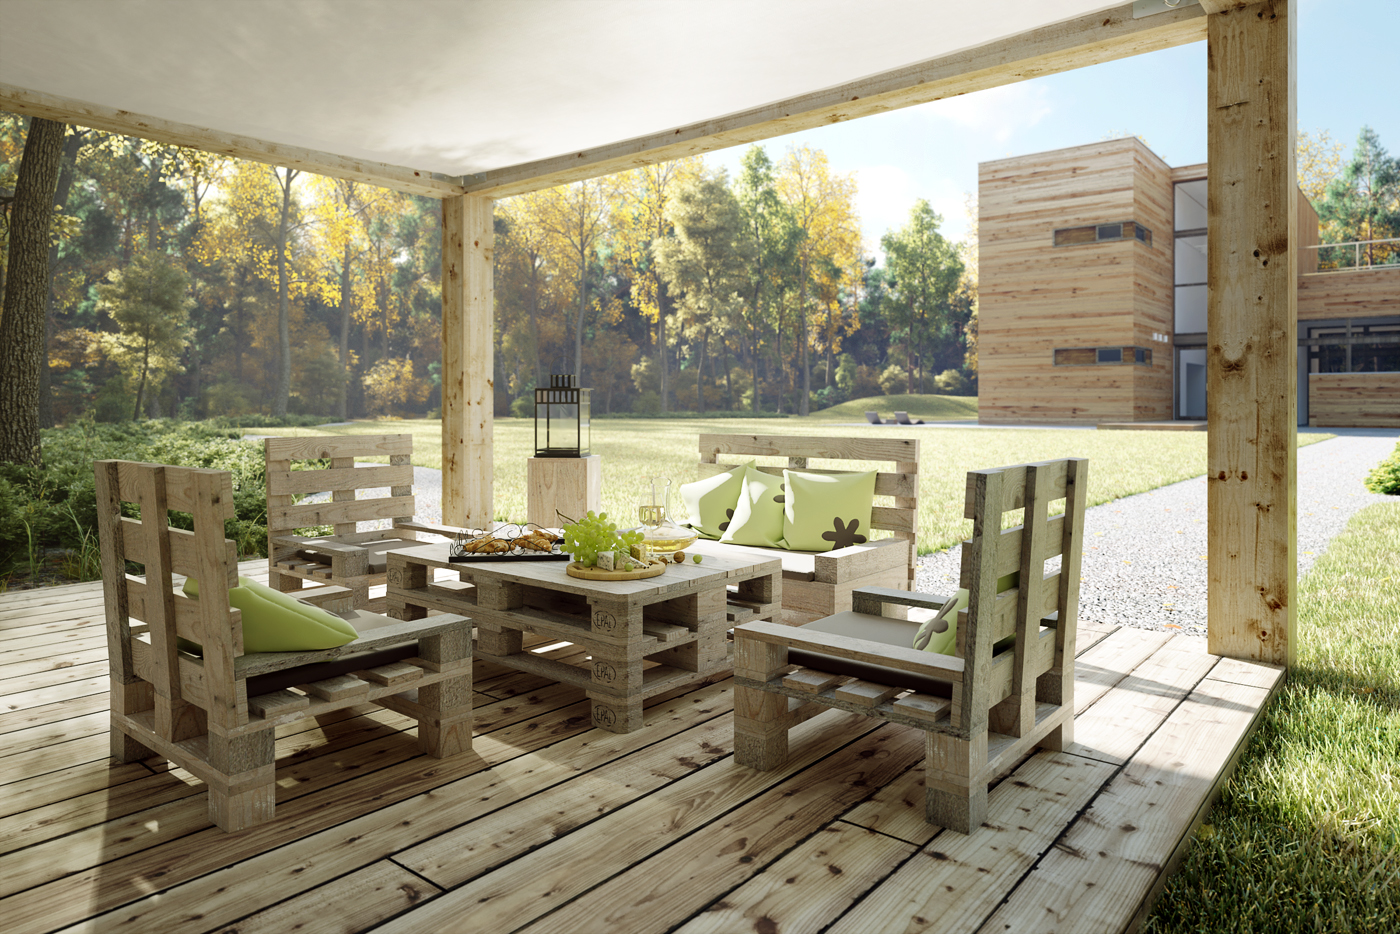 Evermotion 3d models store textures hdri 3ds max and - 3d max models free download exterior ...